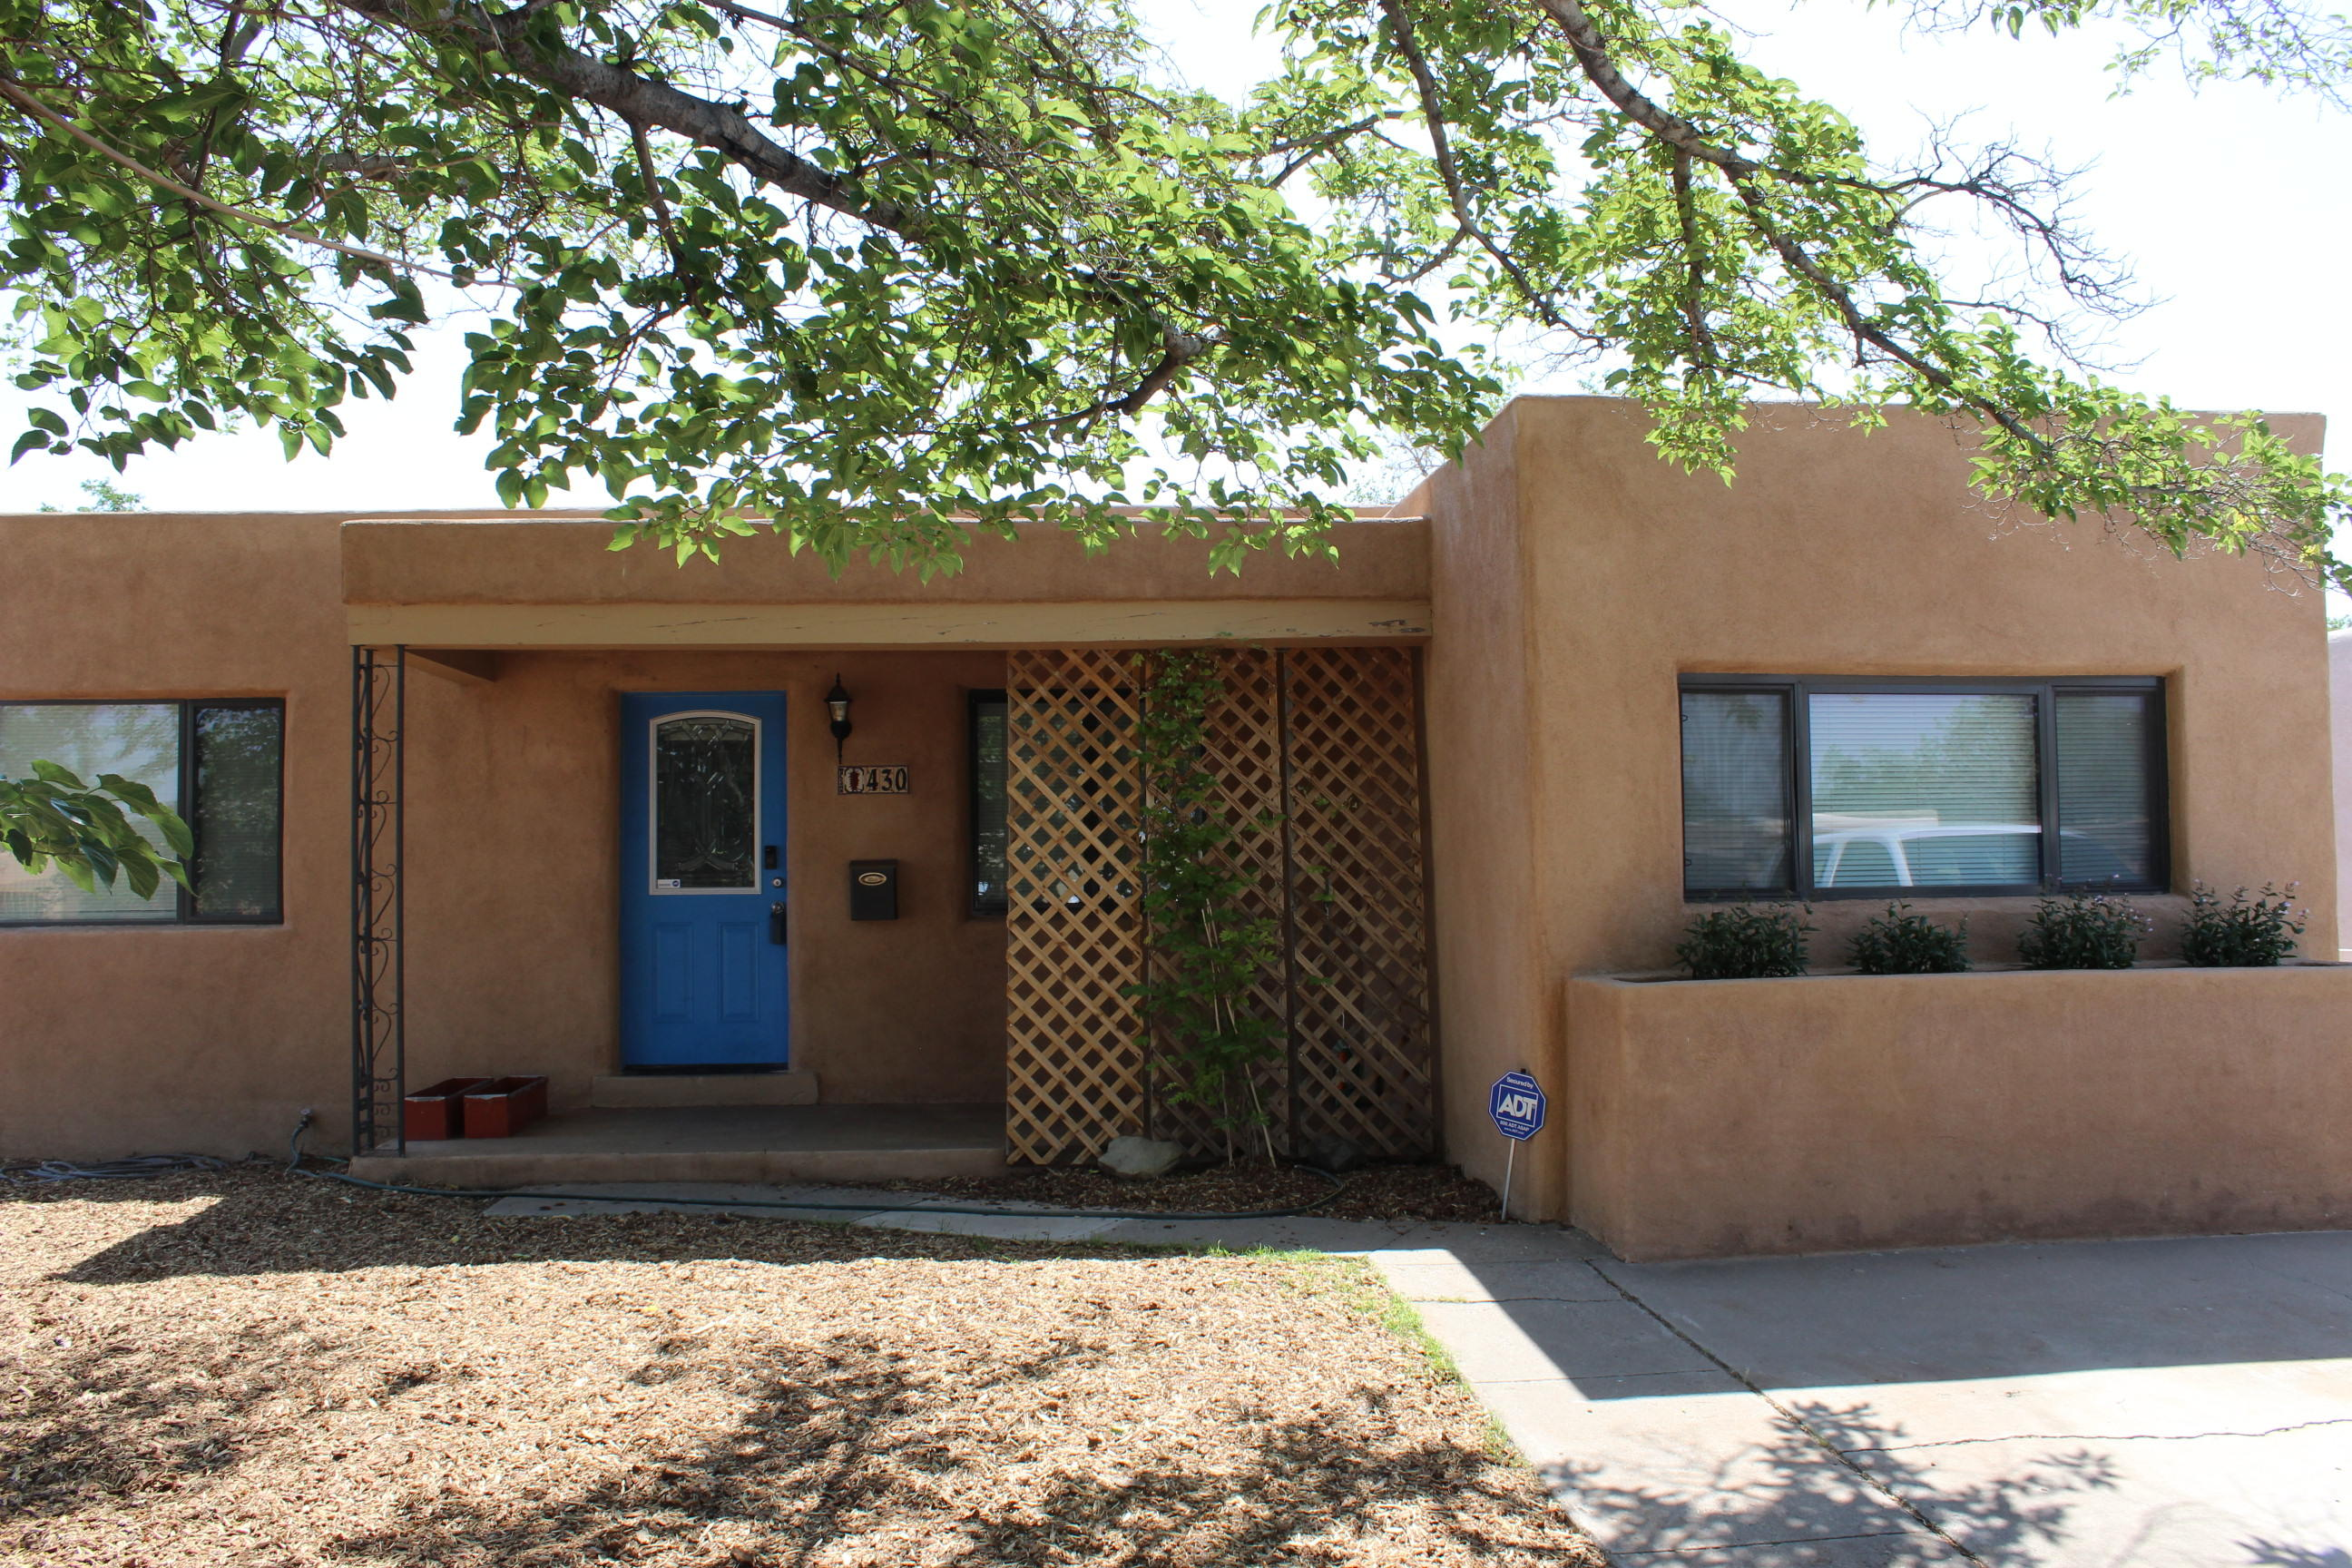 Beautifully maintained home located in the heart of Albuquerque. Gorgeous Kitchen with stainless steel appliances, concrete countertops and knotty pine cabinets. Four bedrooms, three baths, a large laundry room, and an office or fifth bedroom. New evaporative cooler, fresh paint, pending new carpet install, all of this on a large city lot.